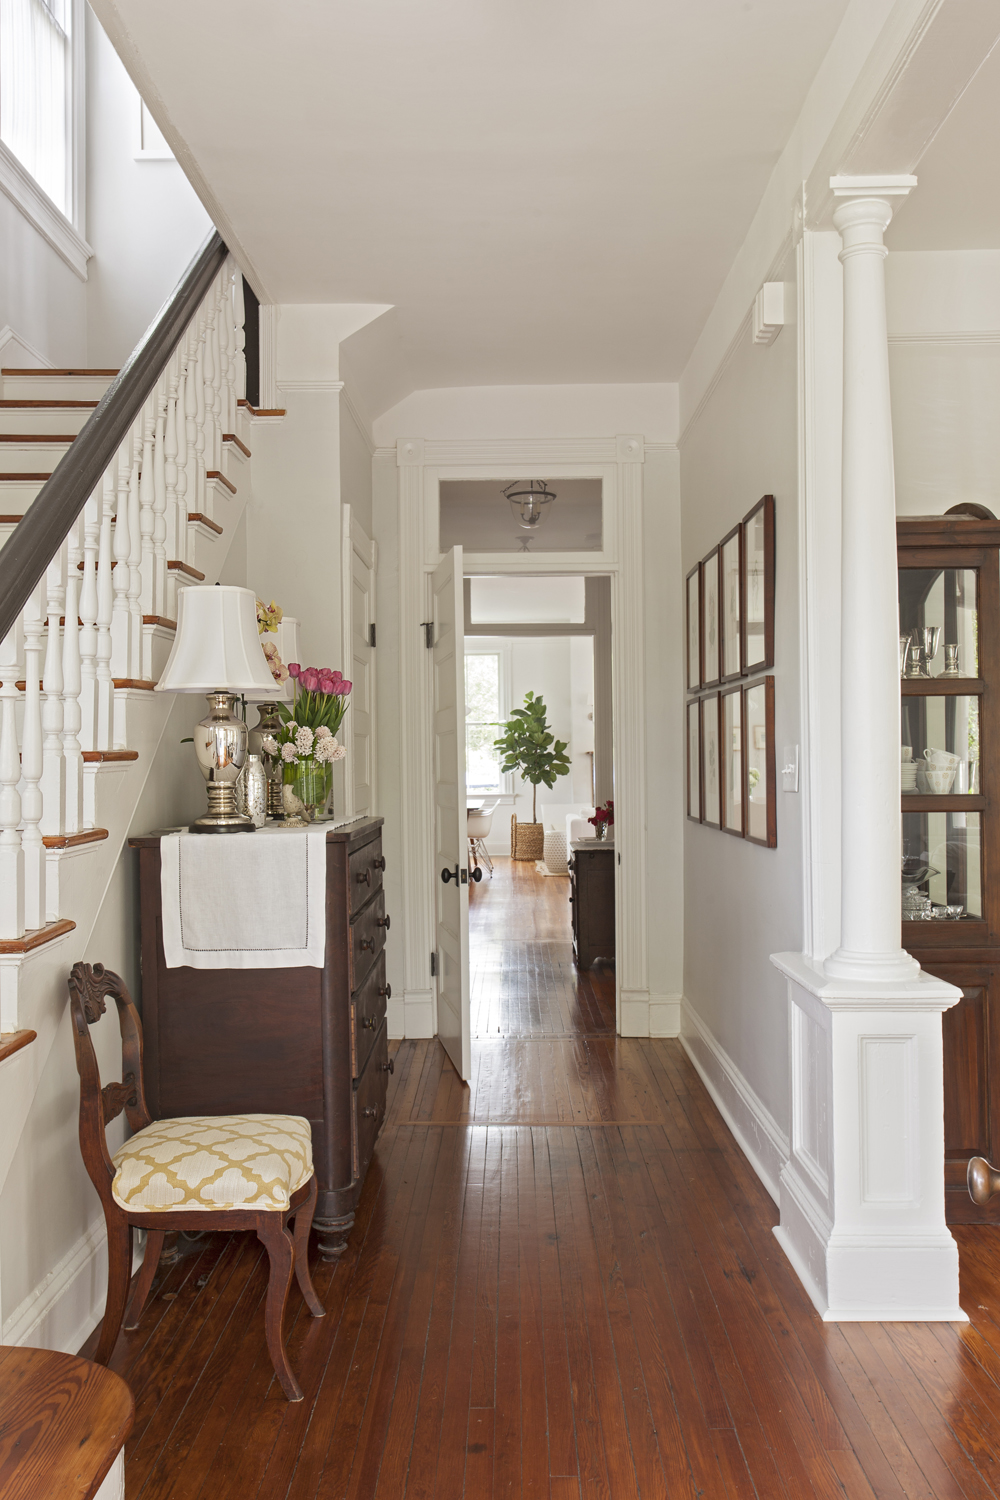 Warm Welcome: In the foyer, guests are greeted by charming original details, such as heart-pine floors and carefully restored millwork.